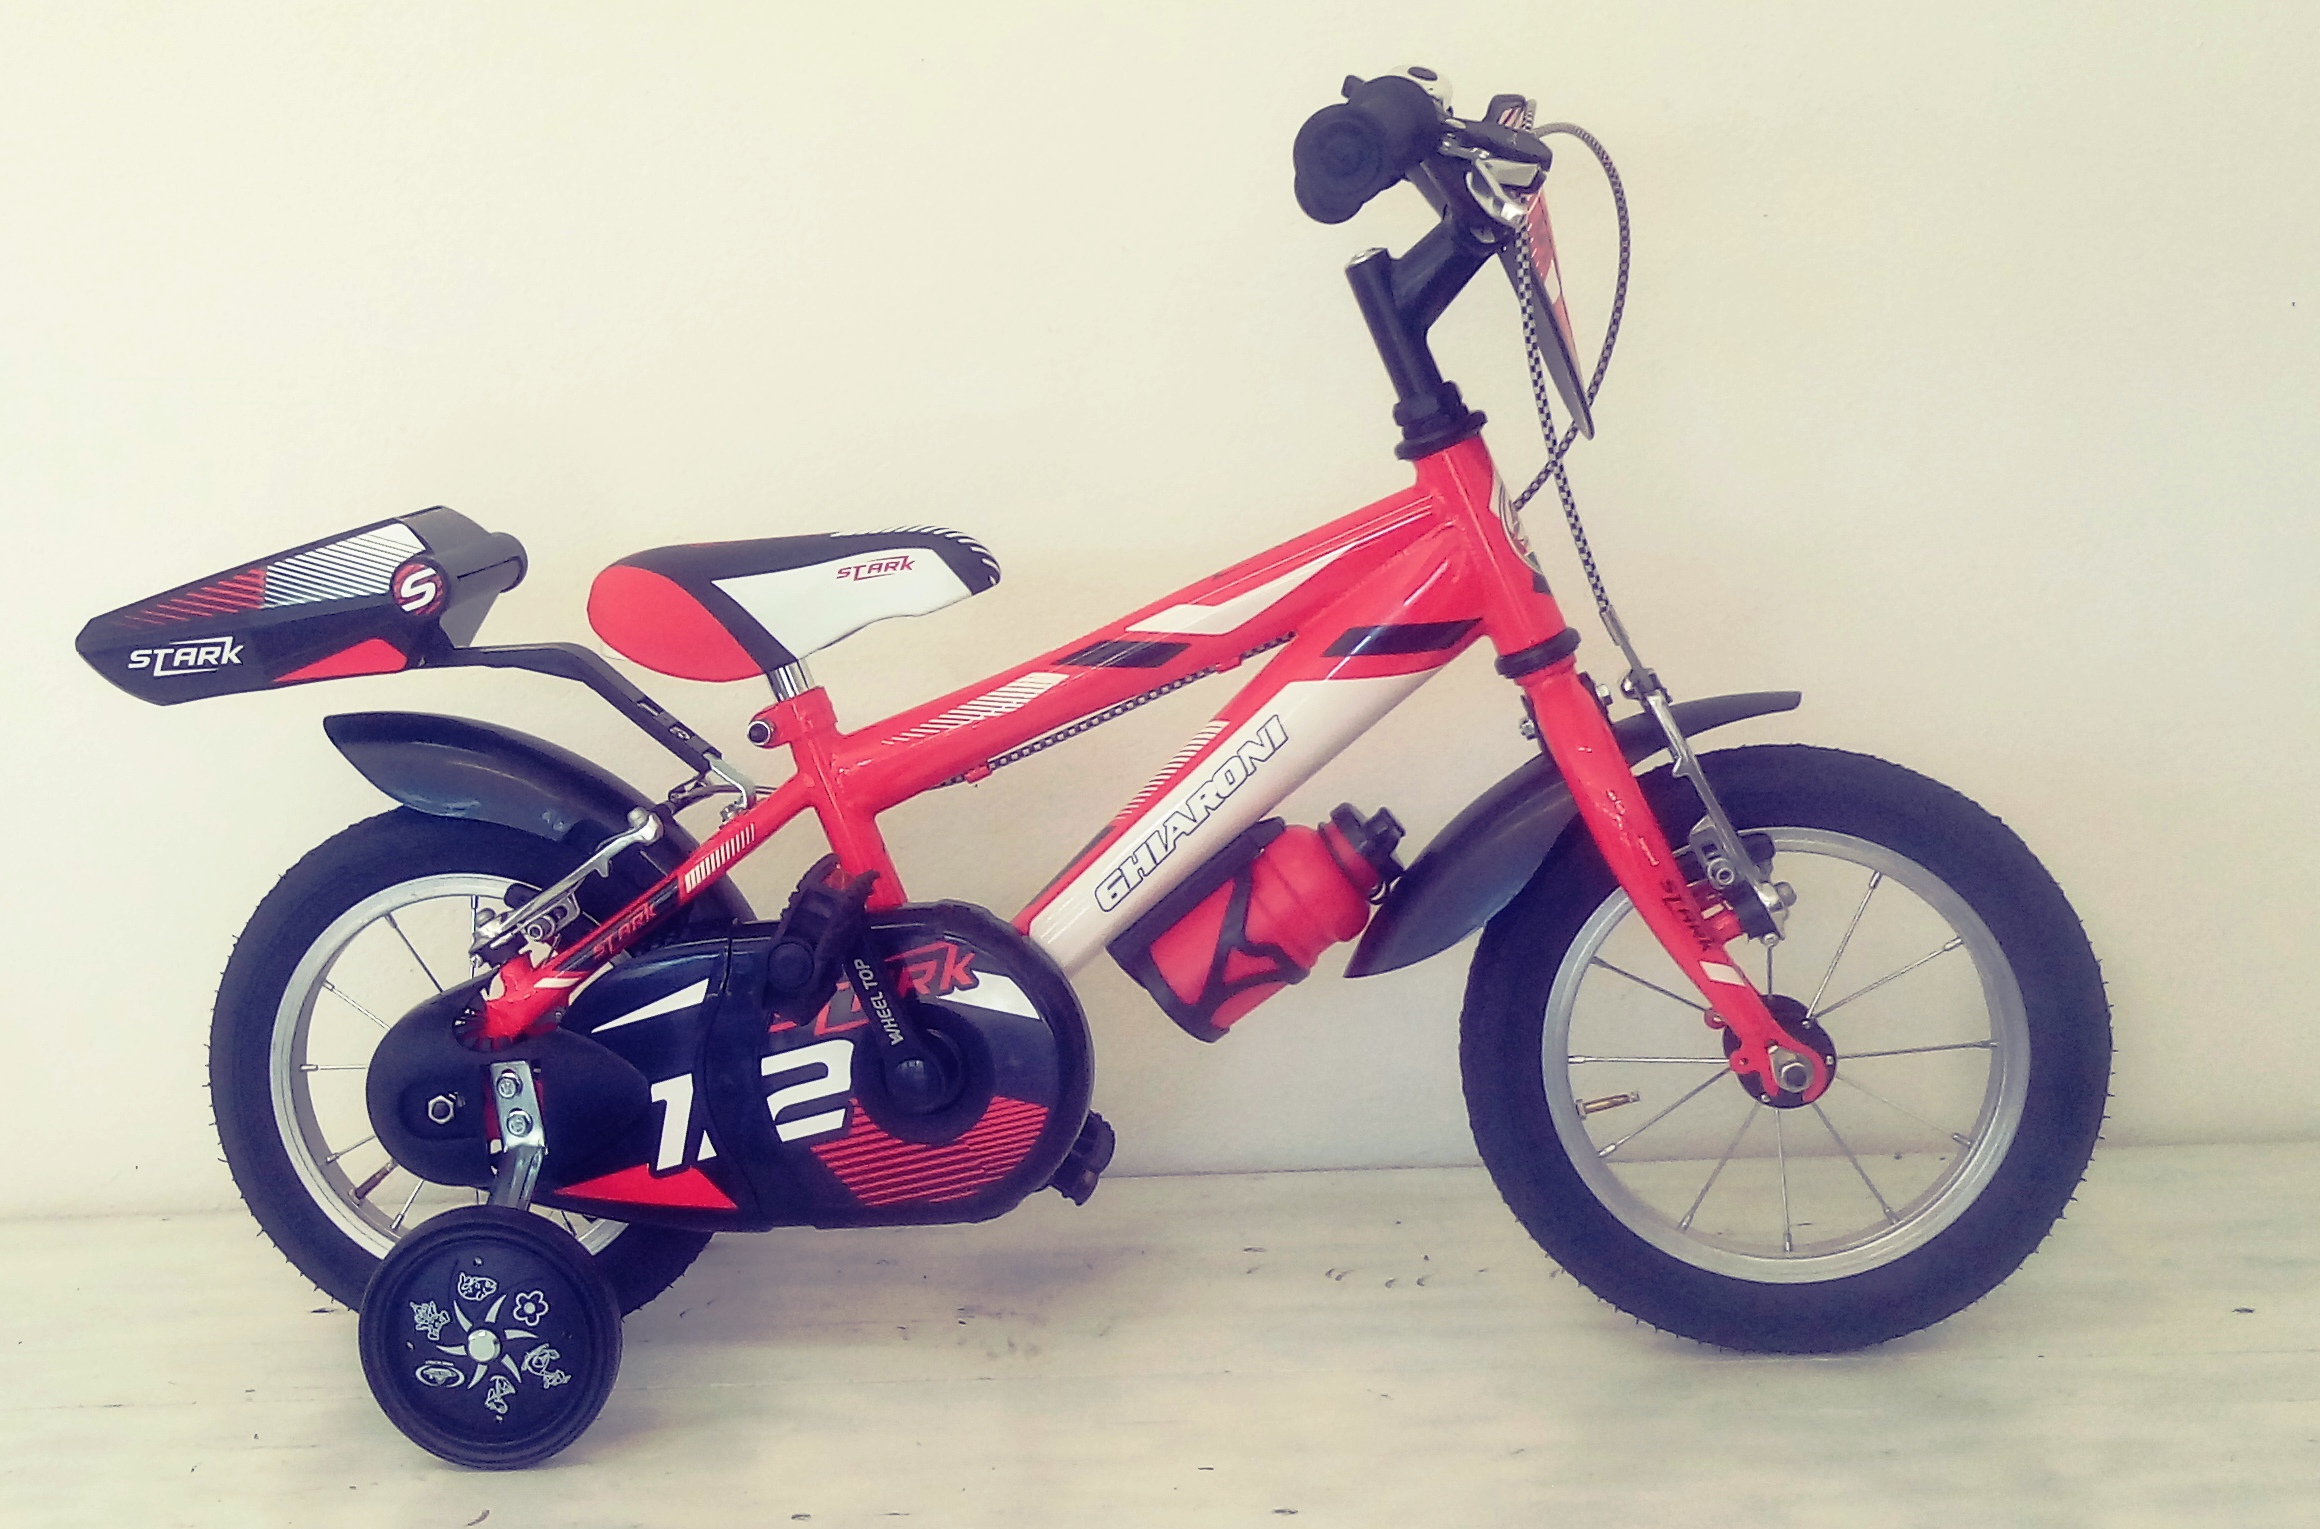 "ART. 53.00 CITY BIKE 12"" bambino 2020"